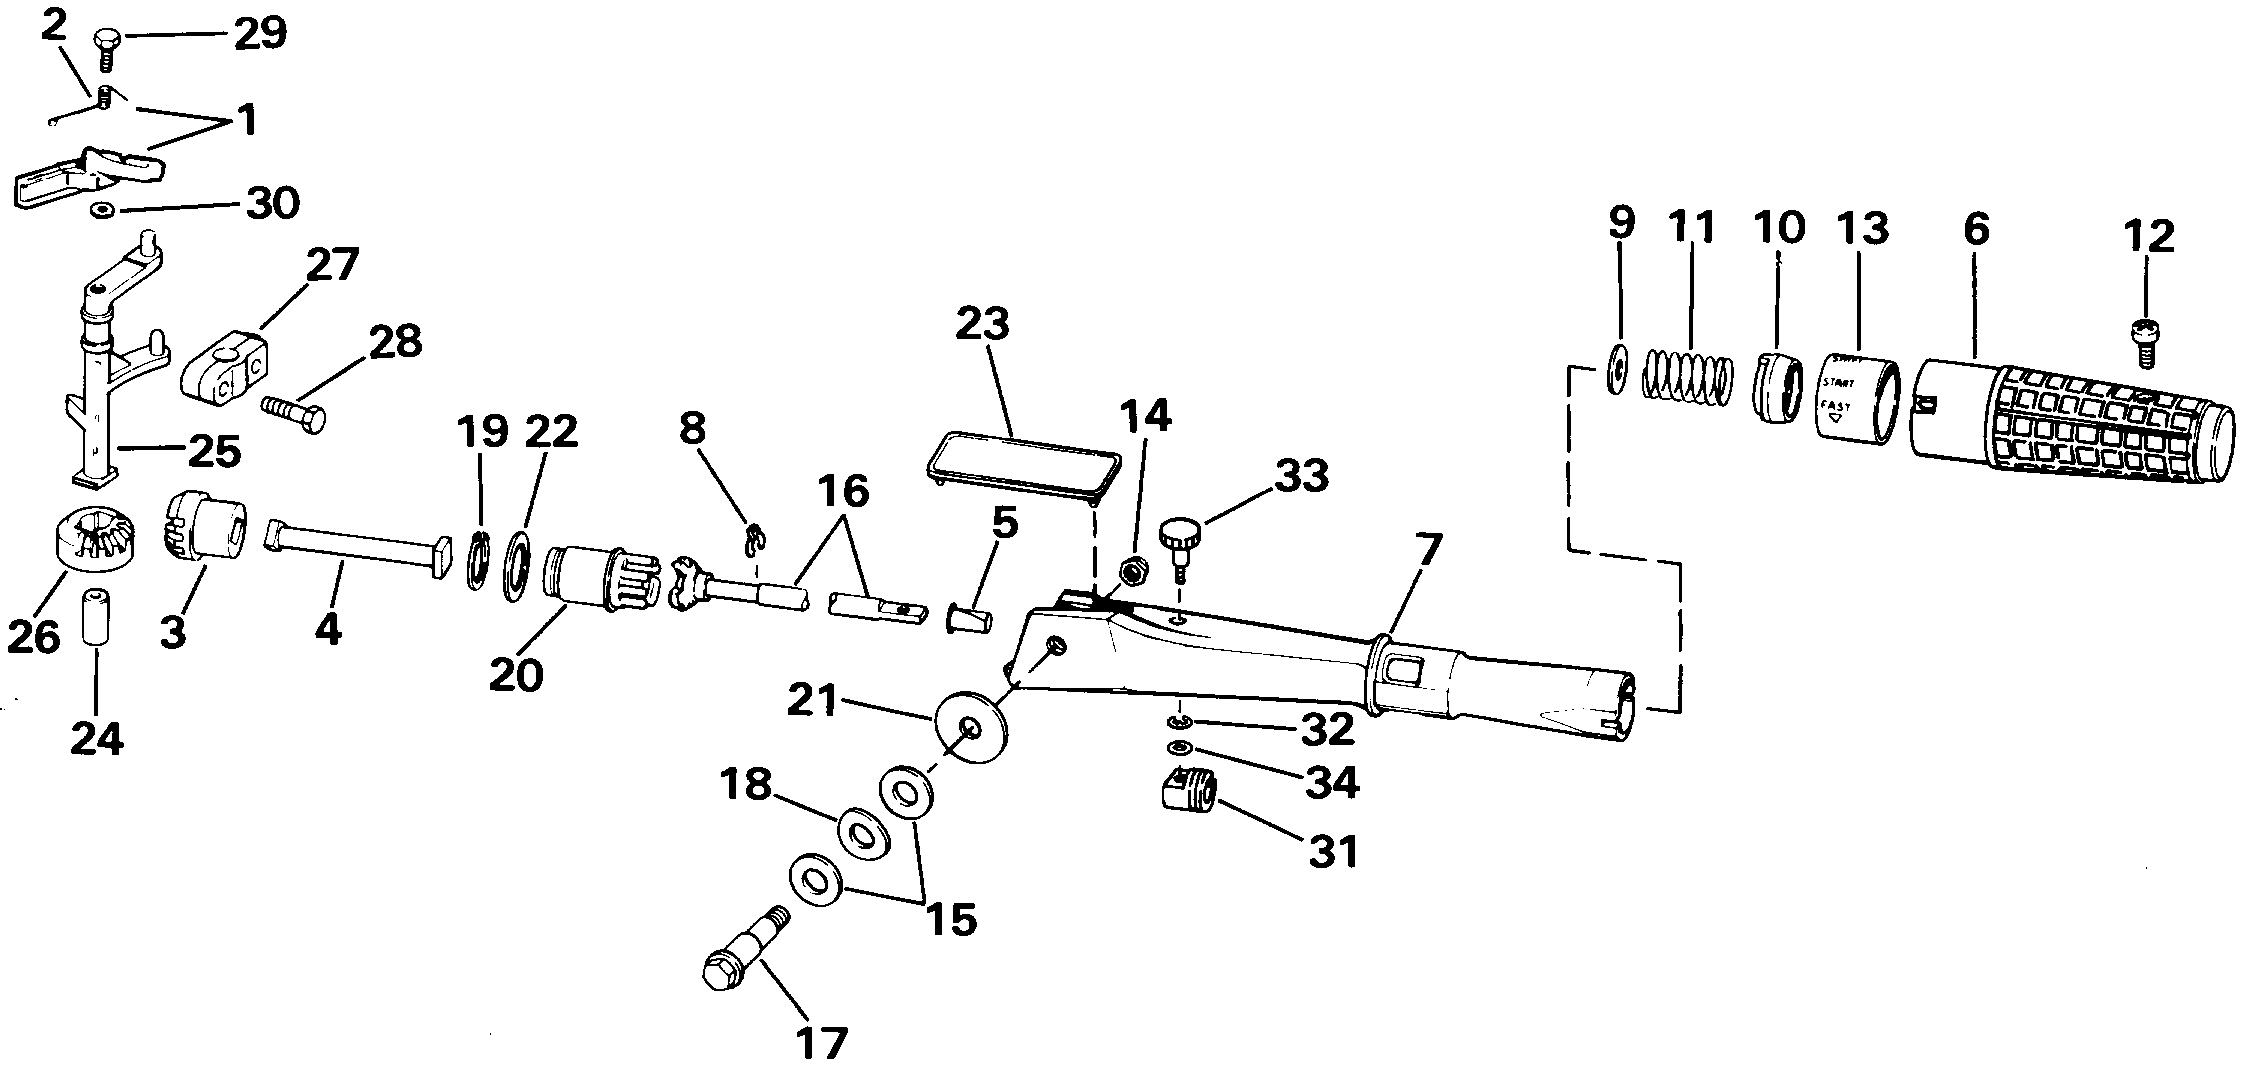 150 hp mercury outboard wiring diagram 150 discover your wiring 85 hp evinrude outboard engine diagram